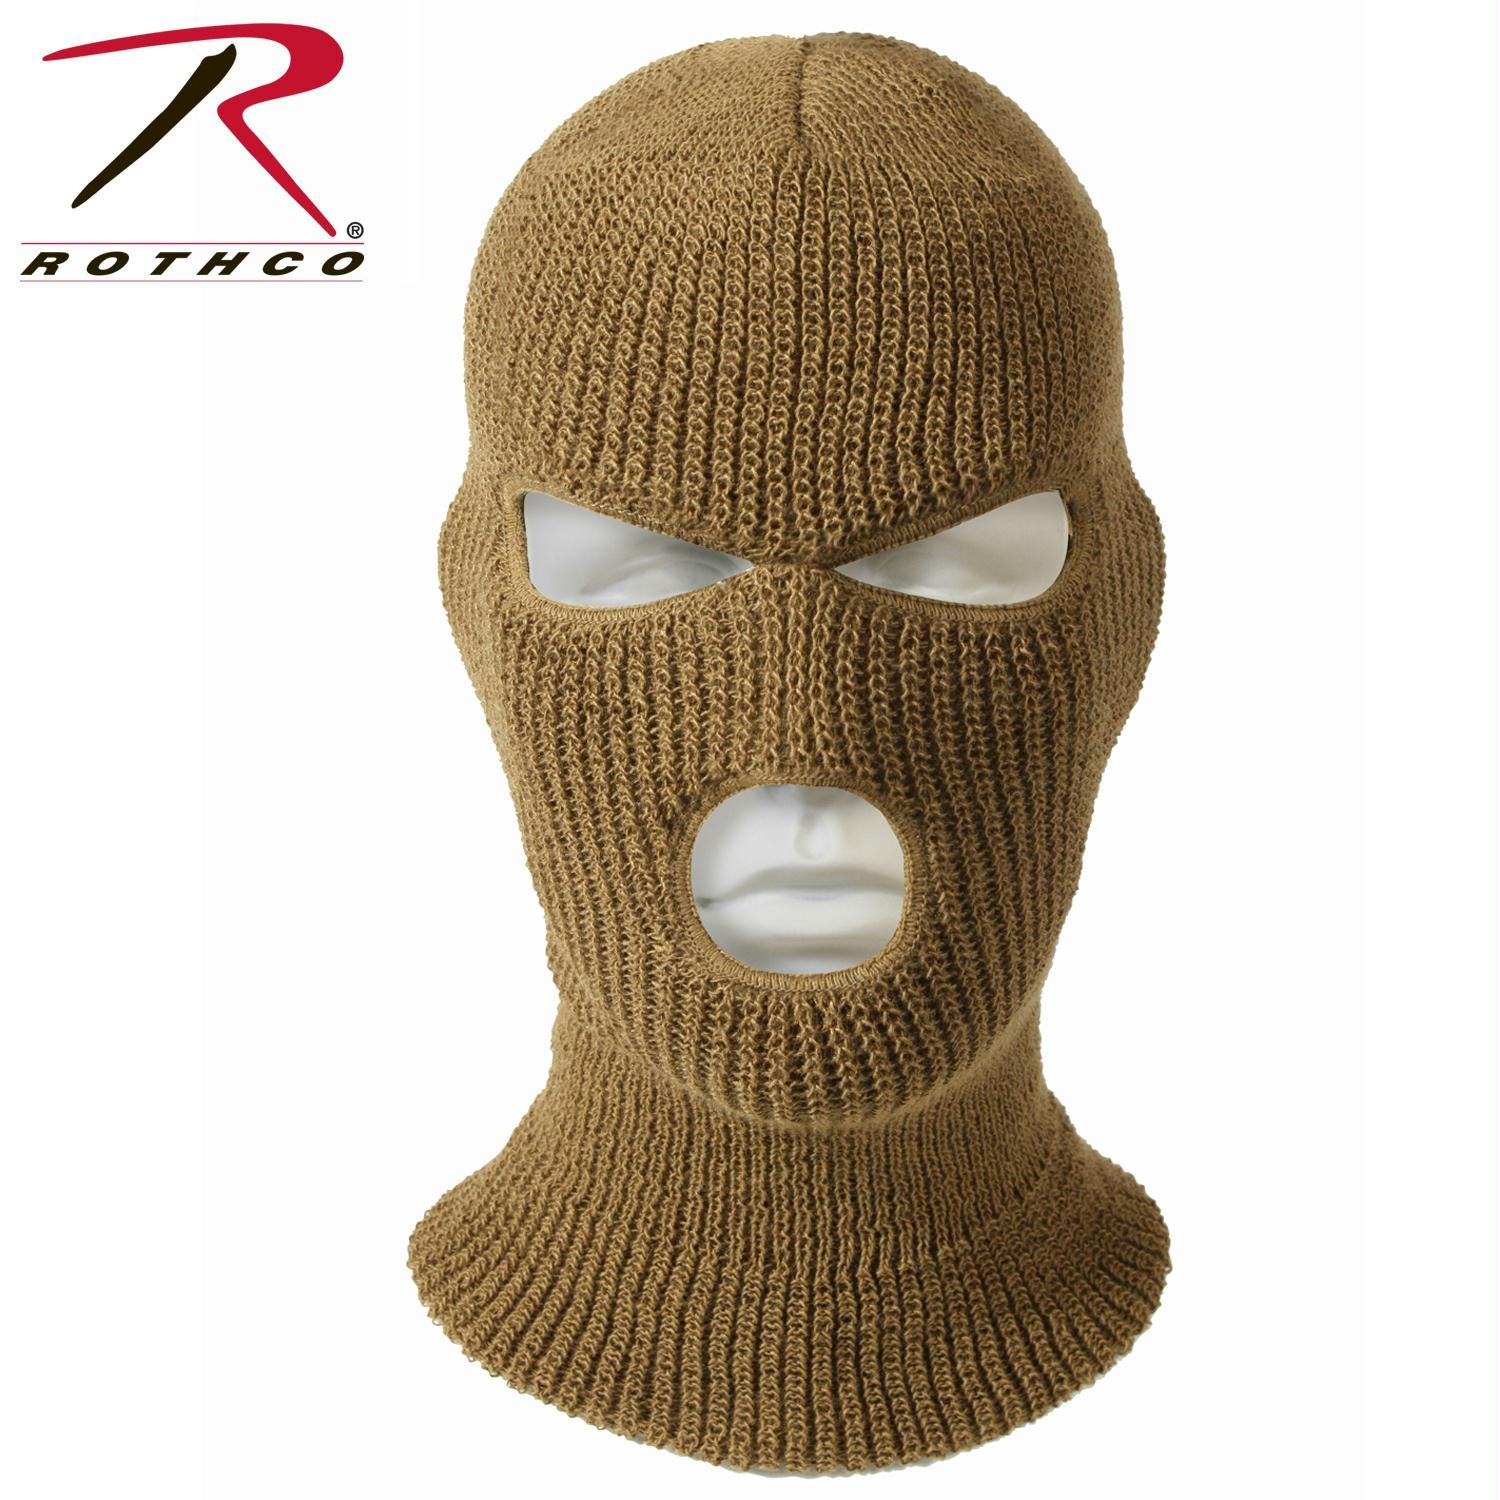 Rothco 3 Hole Face Mask - Coyote Brown